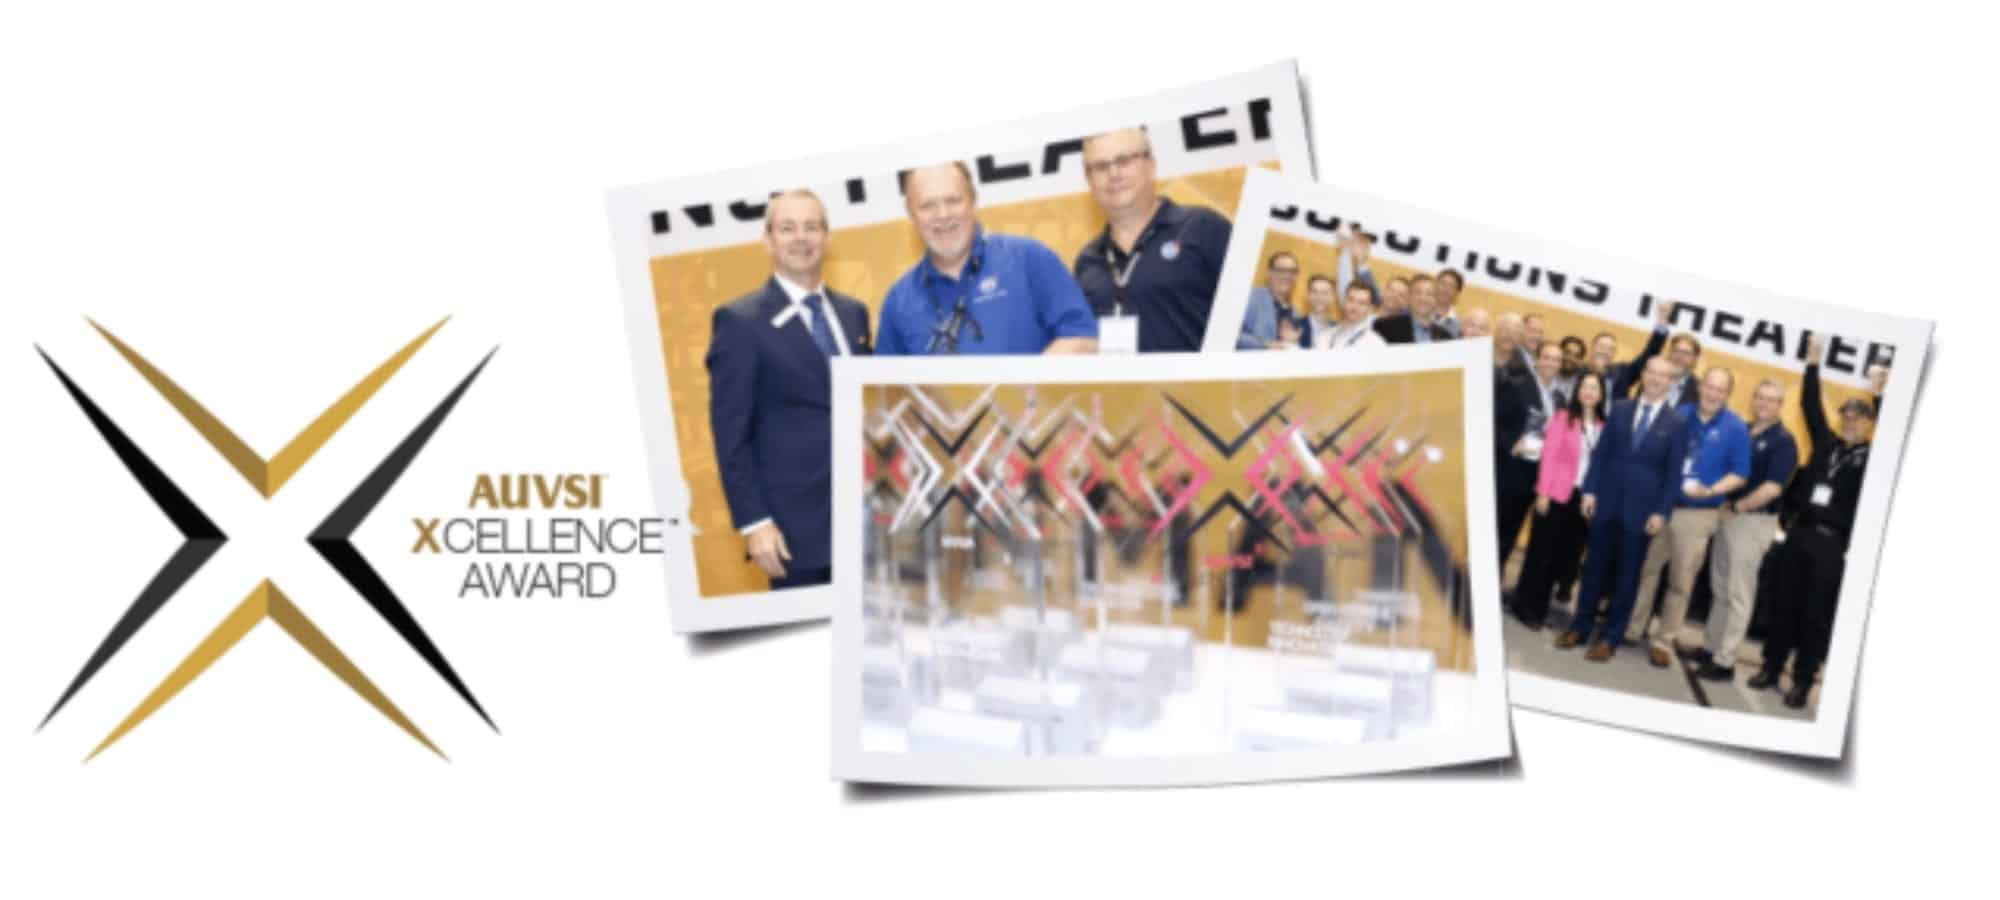 Winners named in 2020 AUVSI XCELLENCE Humanitarian and Public Safety Award